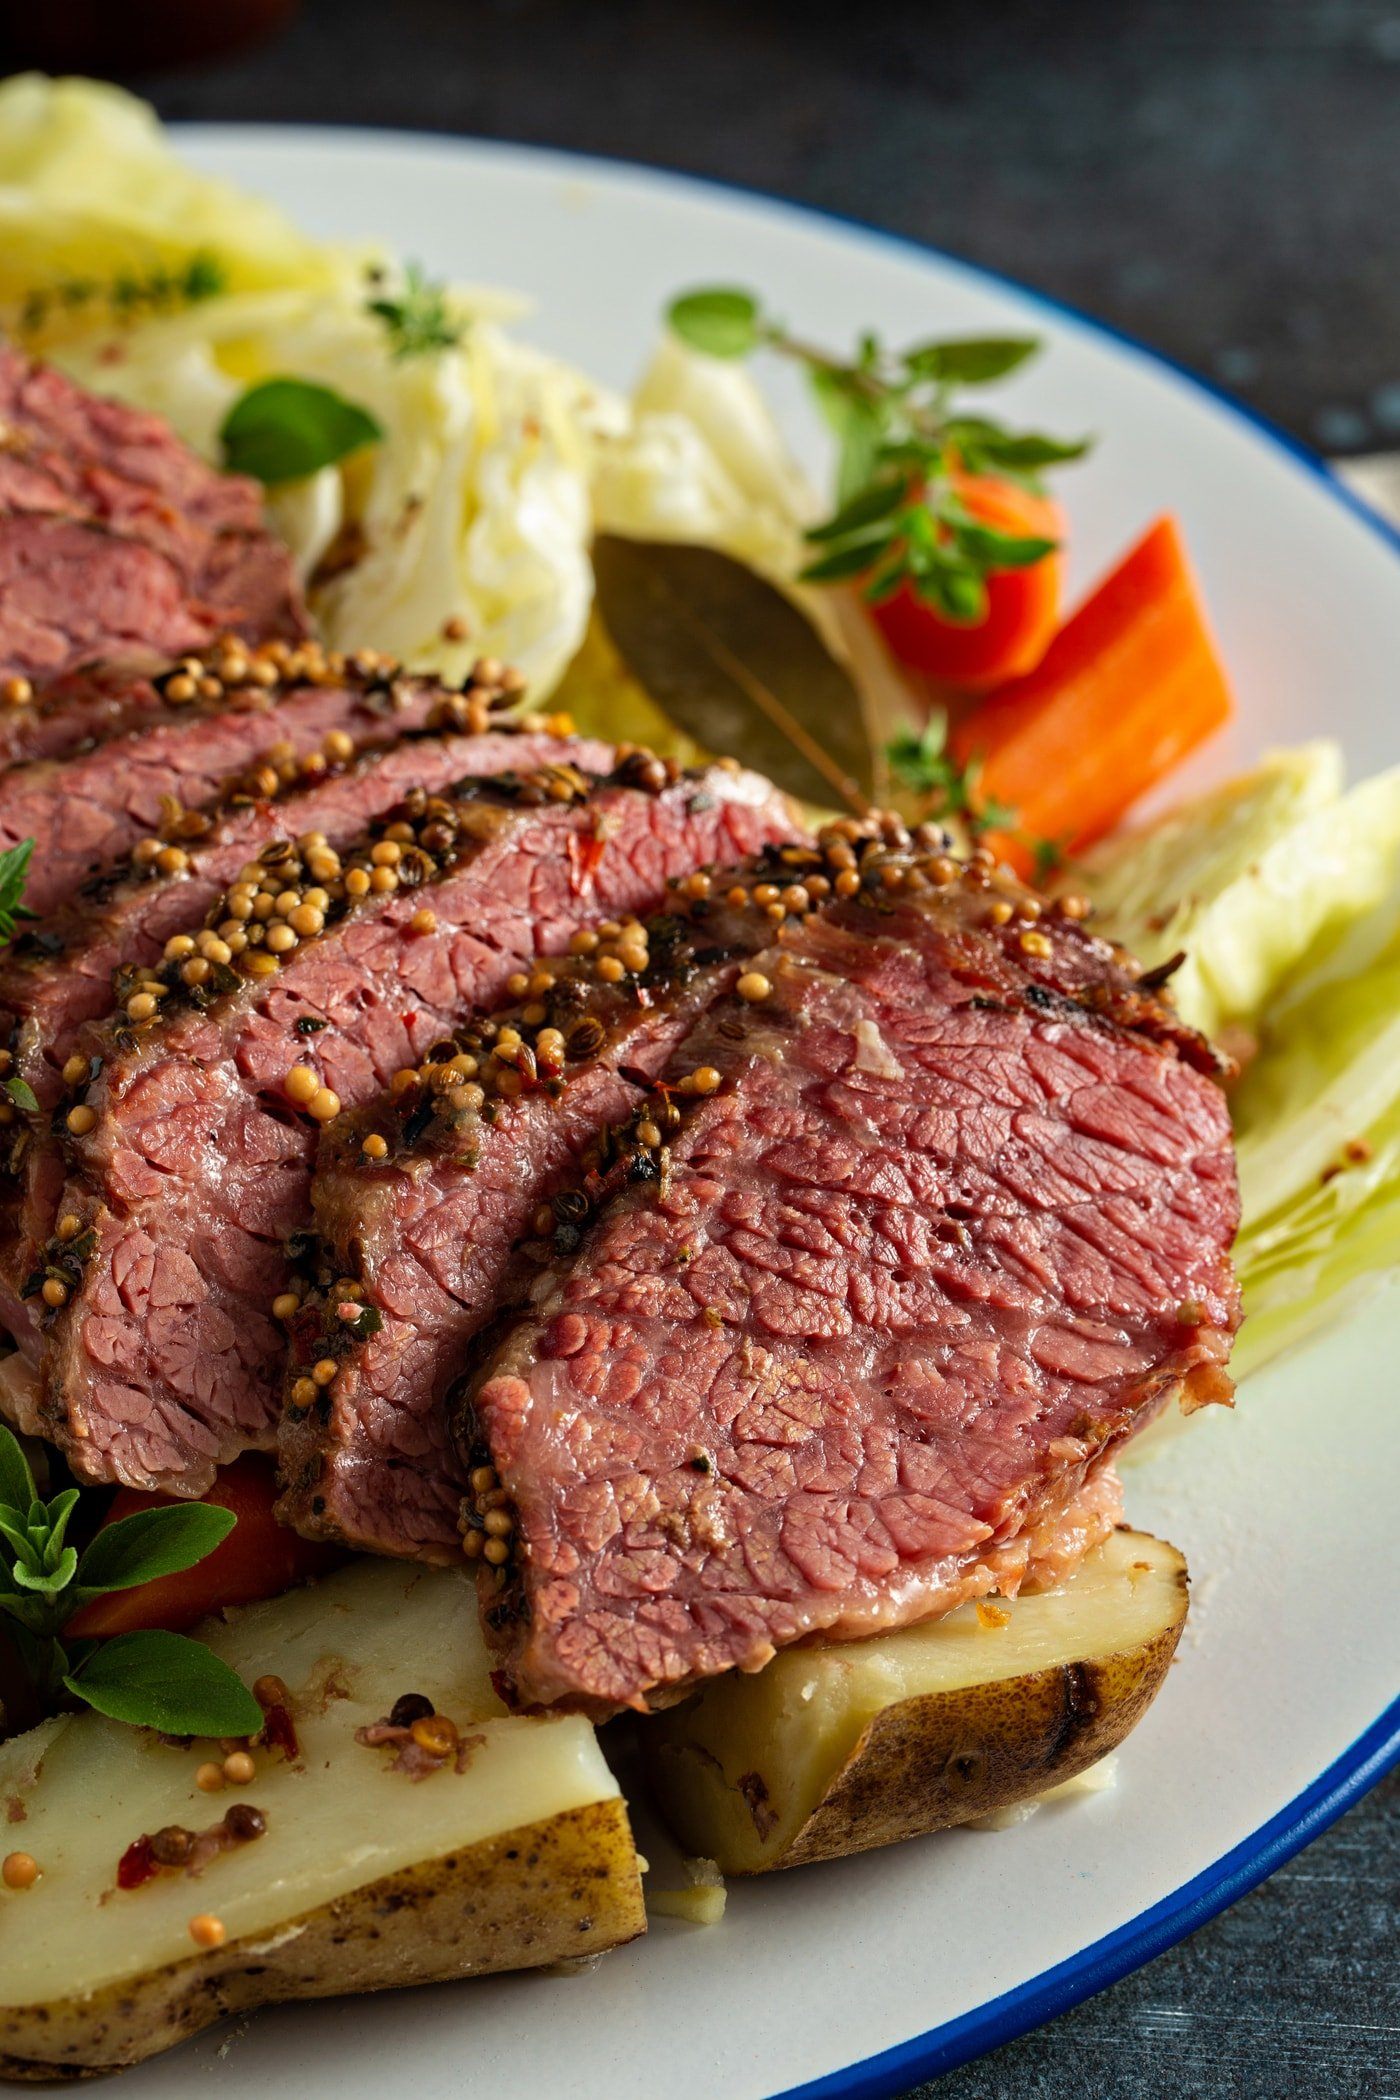 Slice corned beef resting on top of cabbage, potatoes and carrots with sprigs of herbs on the side.